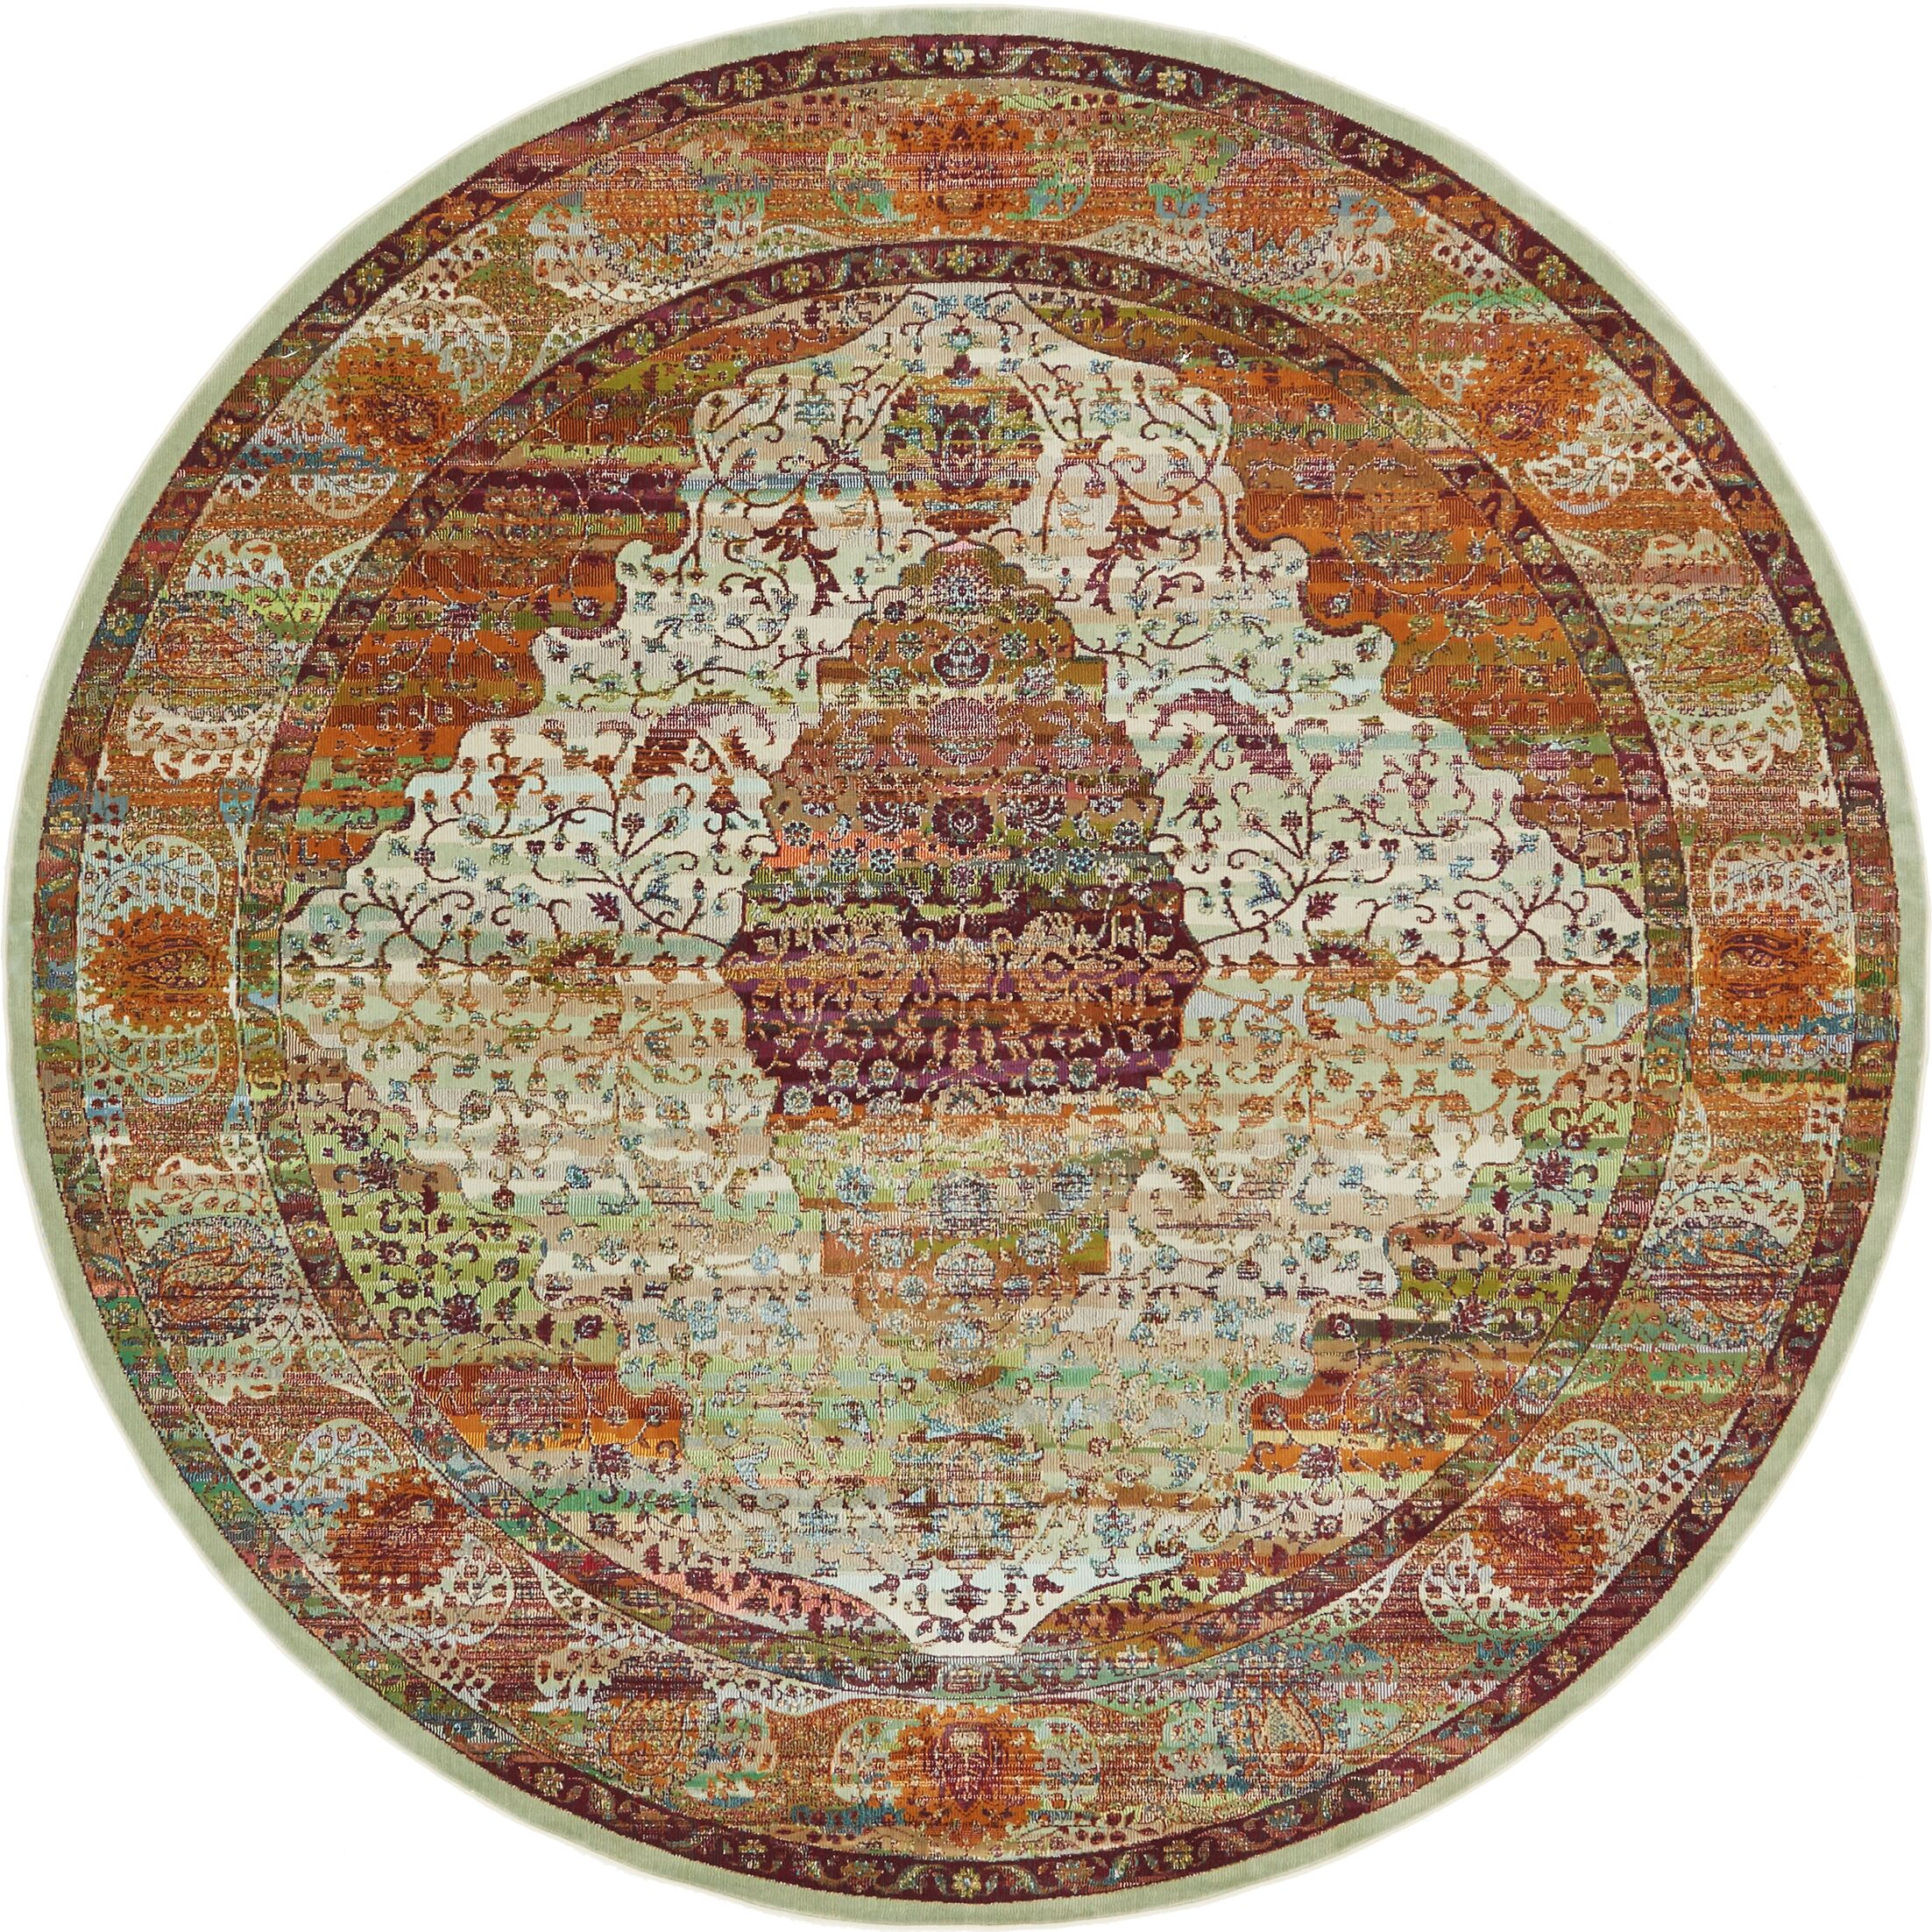 Lonerock Orange Area Rug Rug Size: Round 8'4